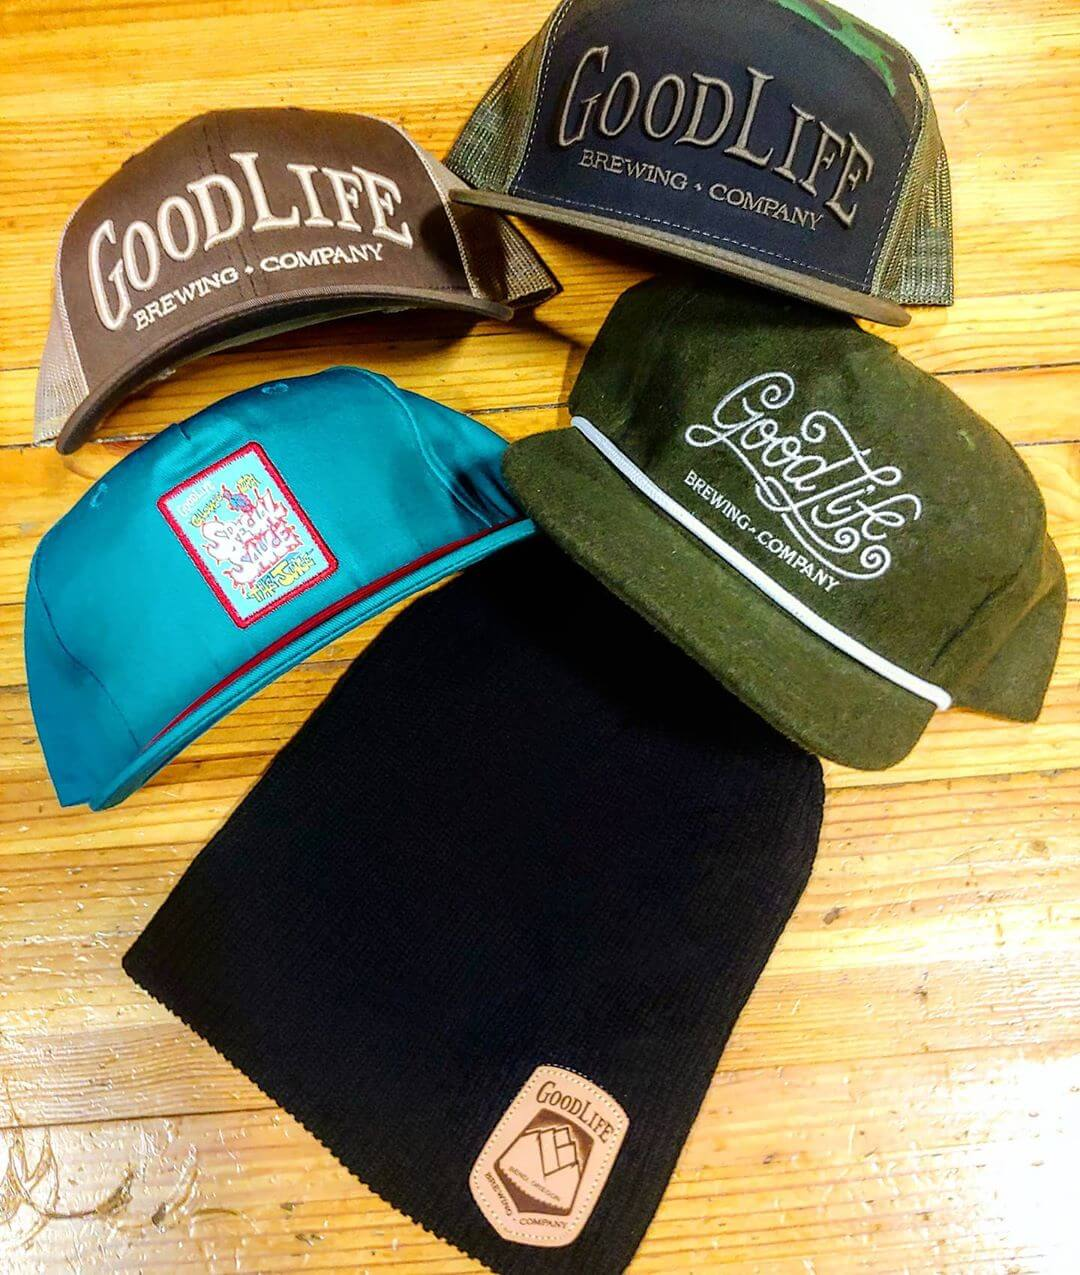 Last Chance!  Sale ends Friday.  25% off of all merchandise Online and in the Tasting Room. www.goodlifebrewing.com with Coupon Code GL25  Get an additional  20% added to your Gift Card!  For $25, Get a $30 Gift Card.  For $50, Get a $60 Gift Card.  For $75, Get a $90 Gift Card.  For $100, Get a $120 Gift Card.